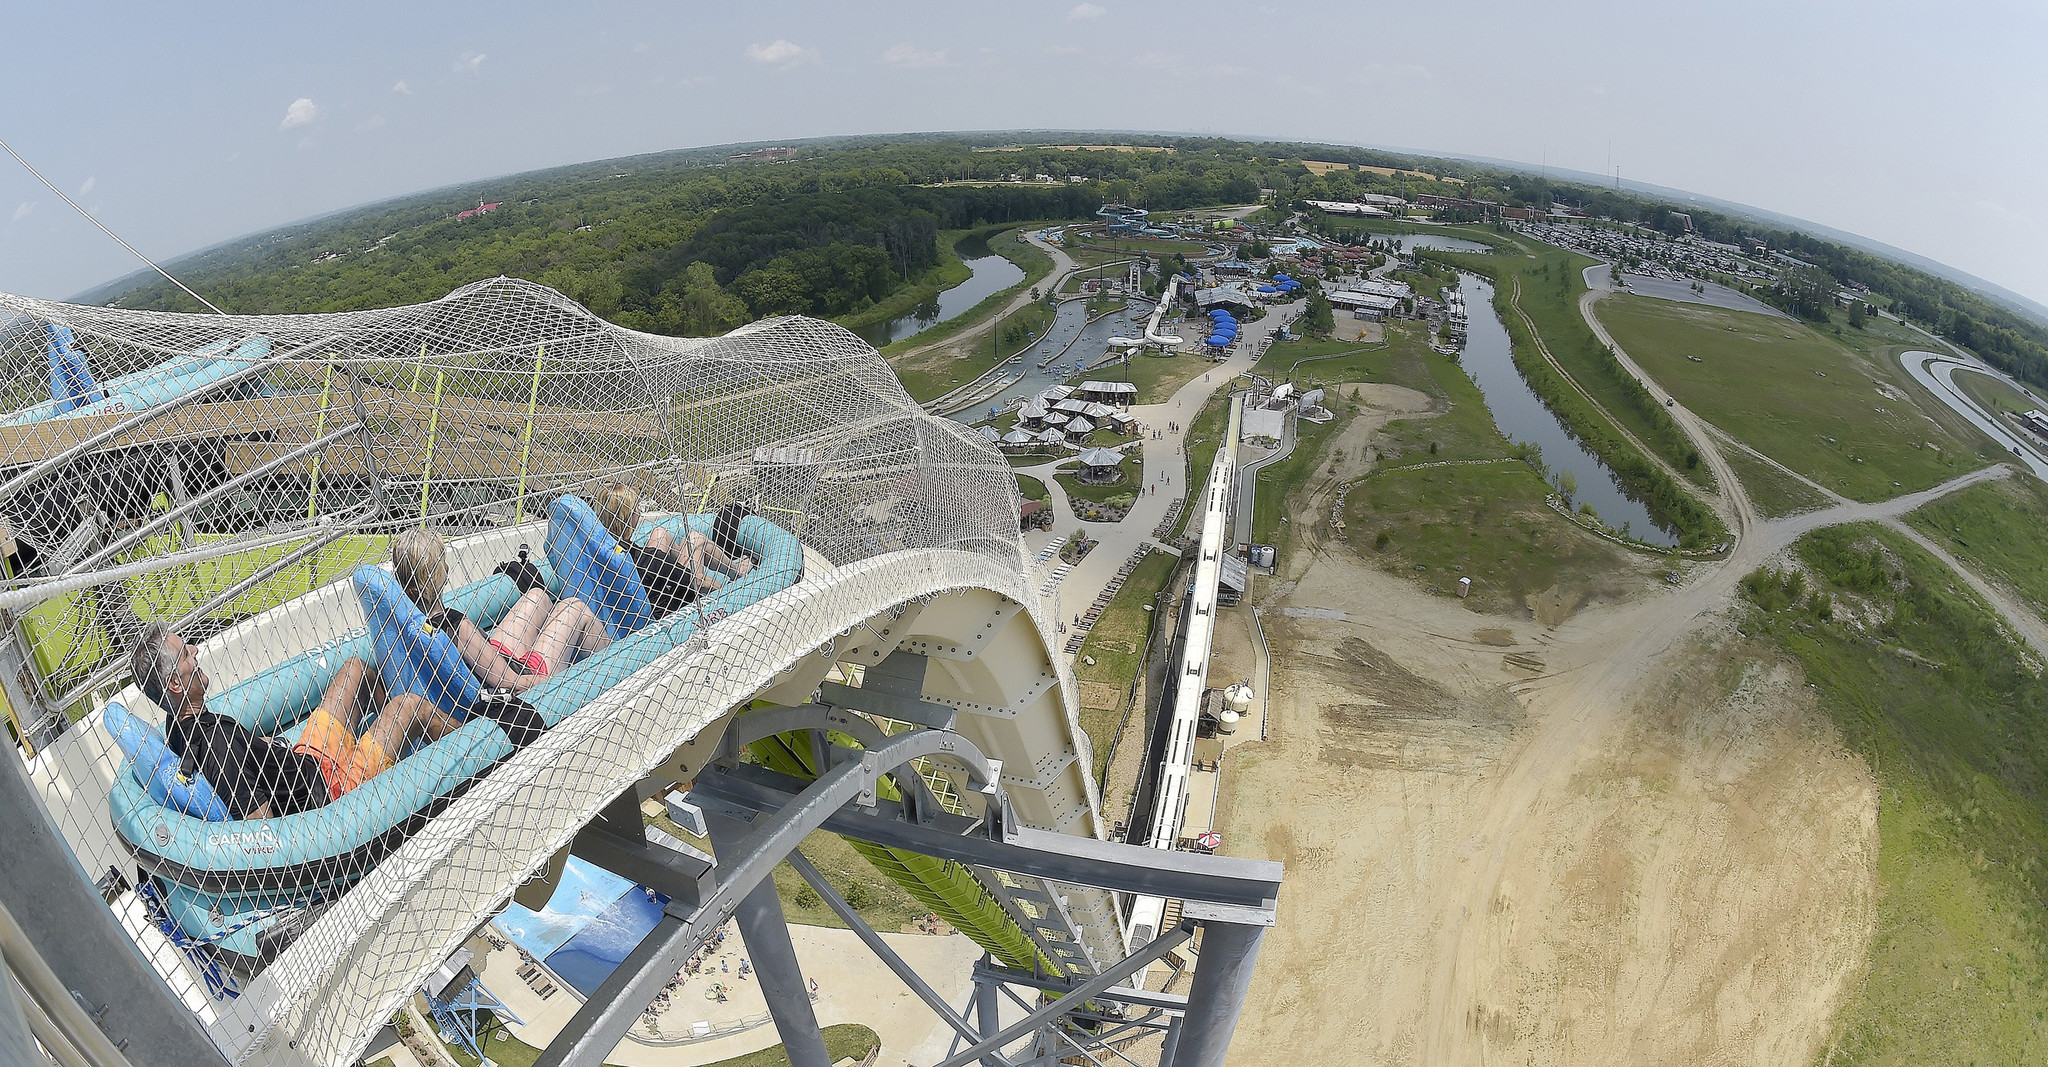 Kansas Waterslide To Be Torn Down After Boy S Decapitation